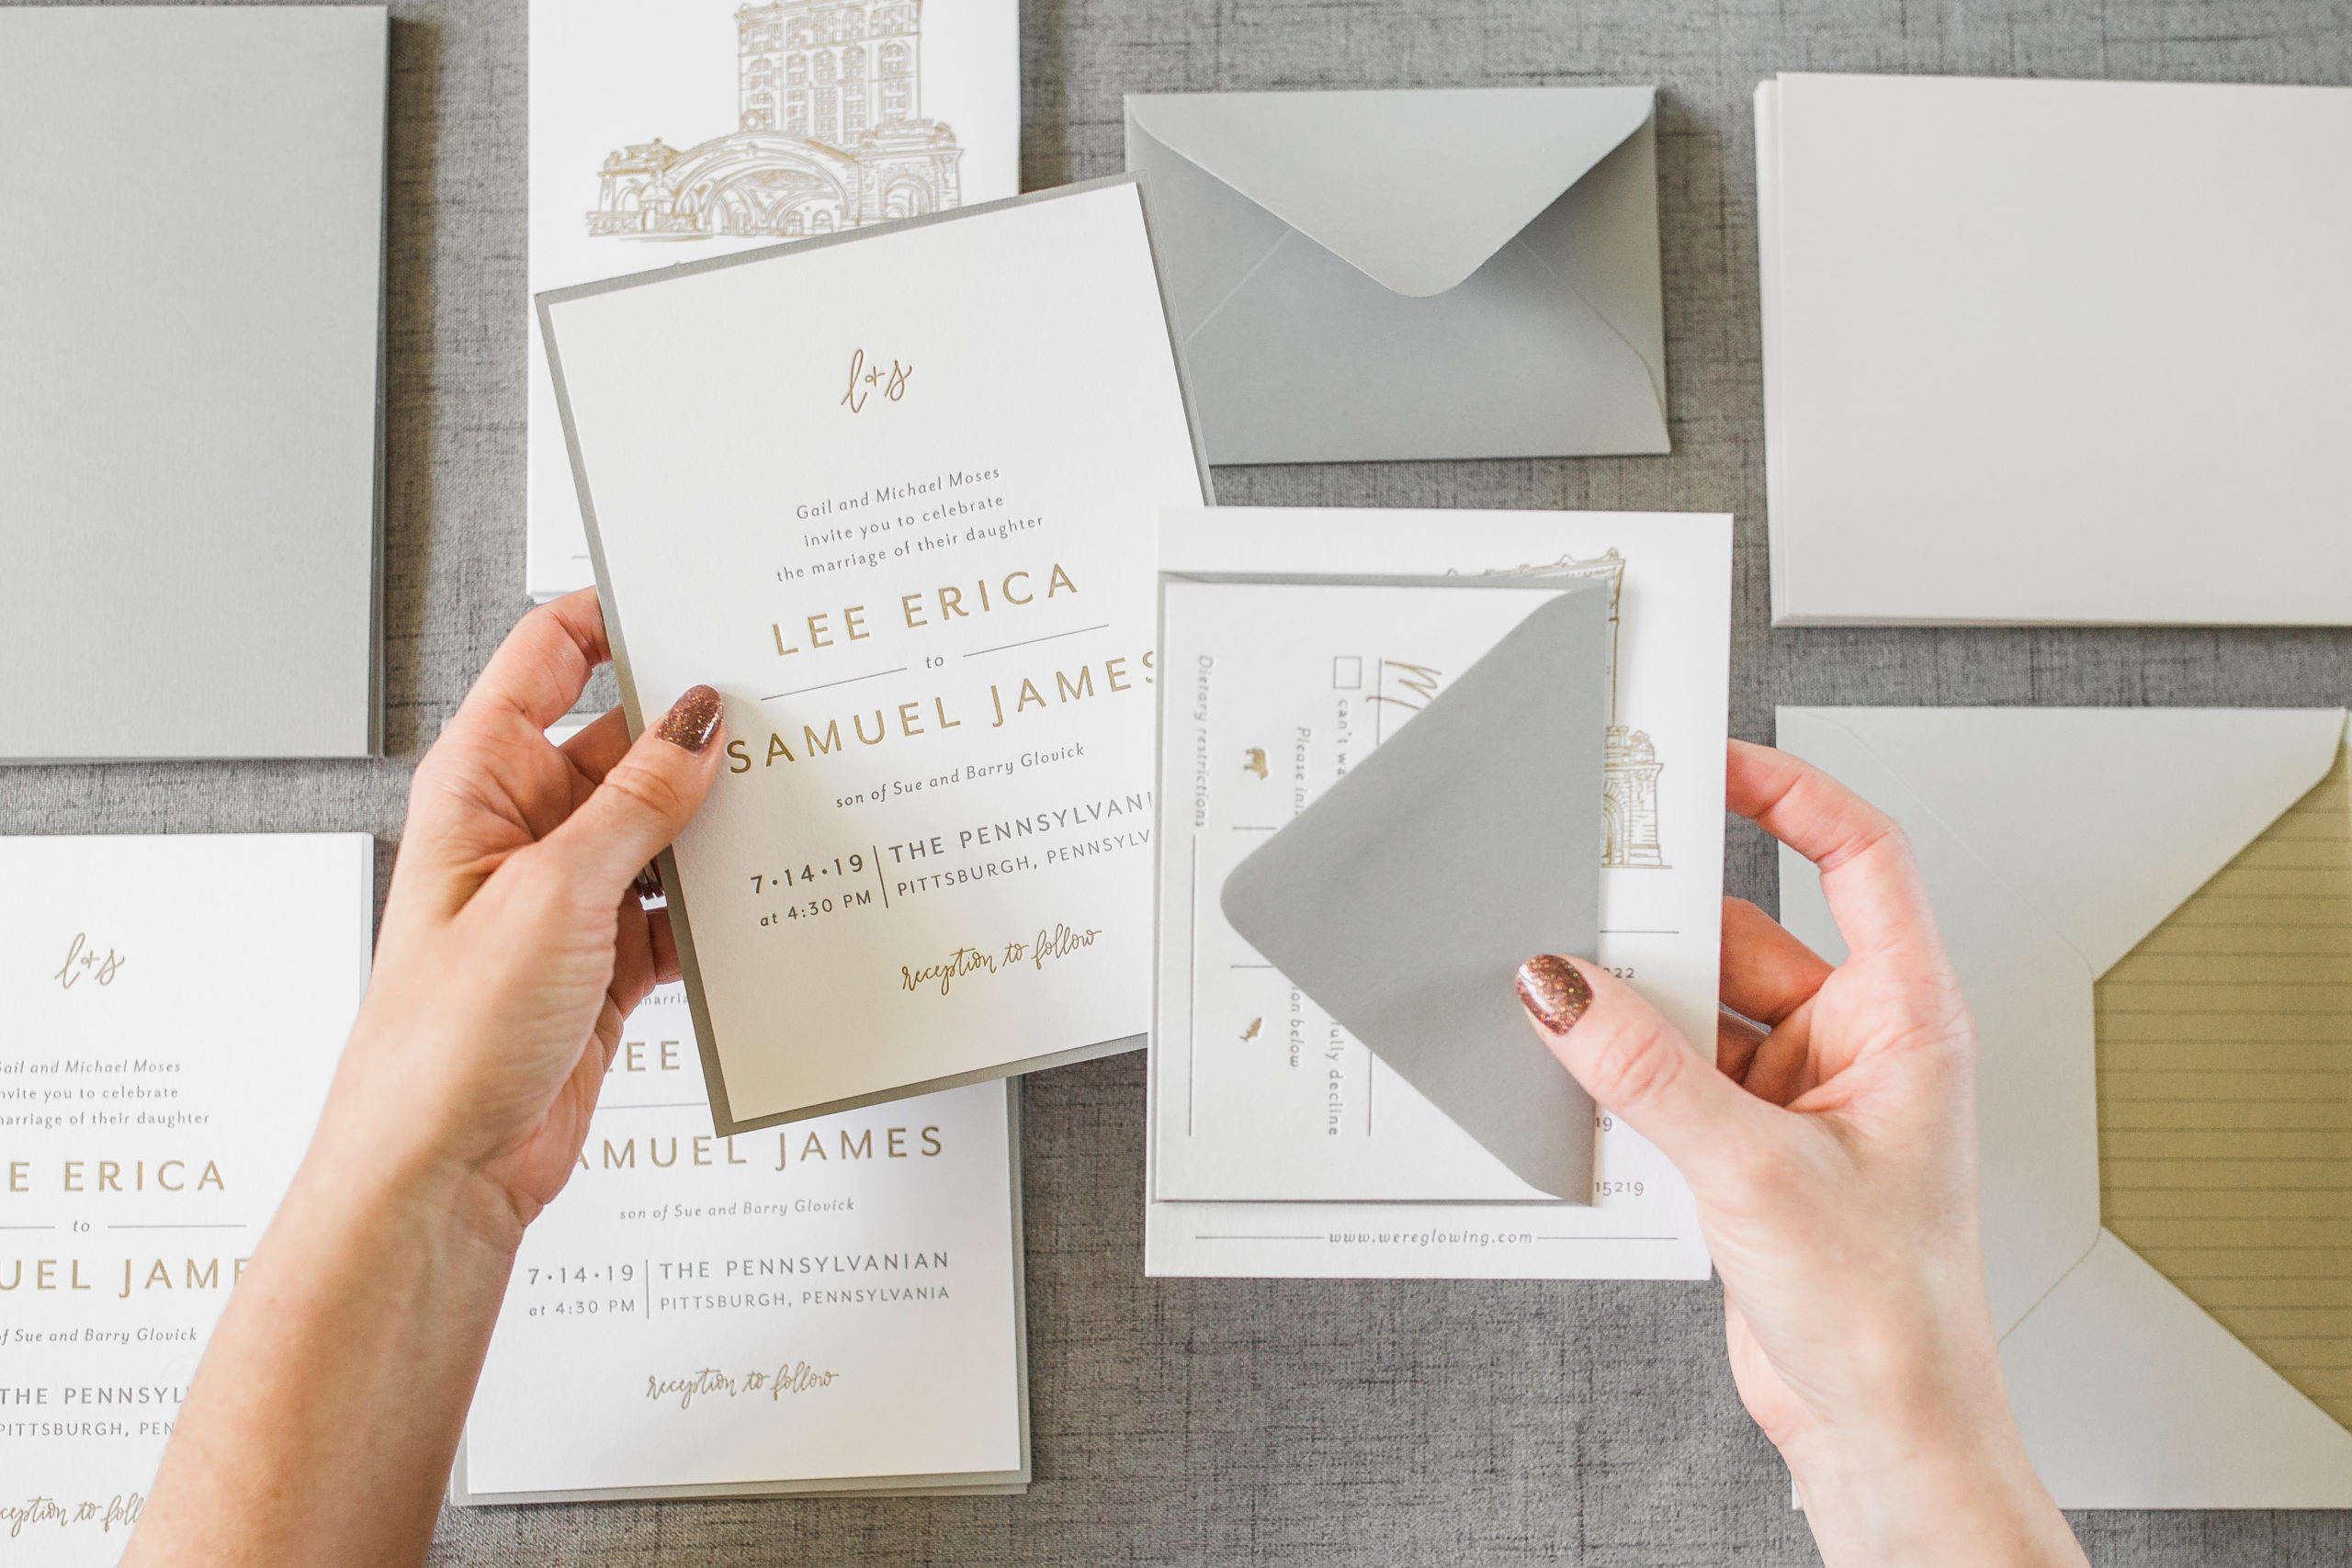 Assembling Wedding Invitations